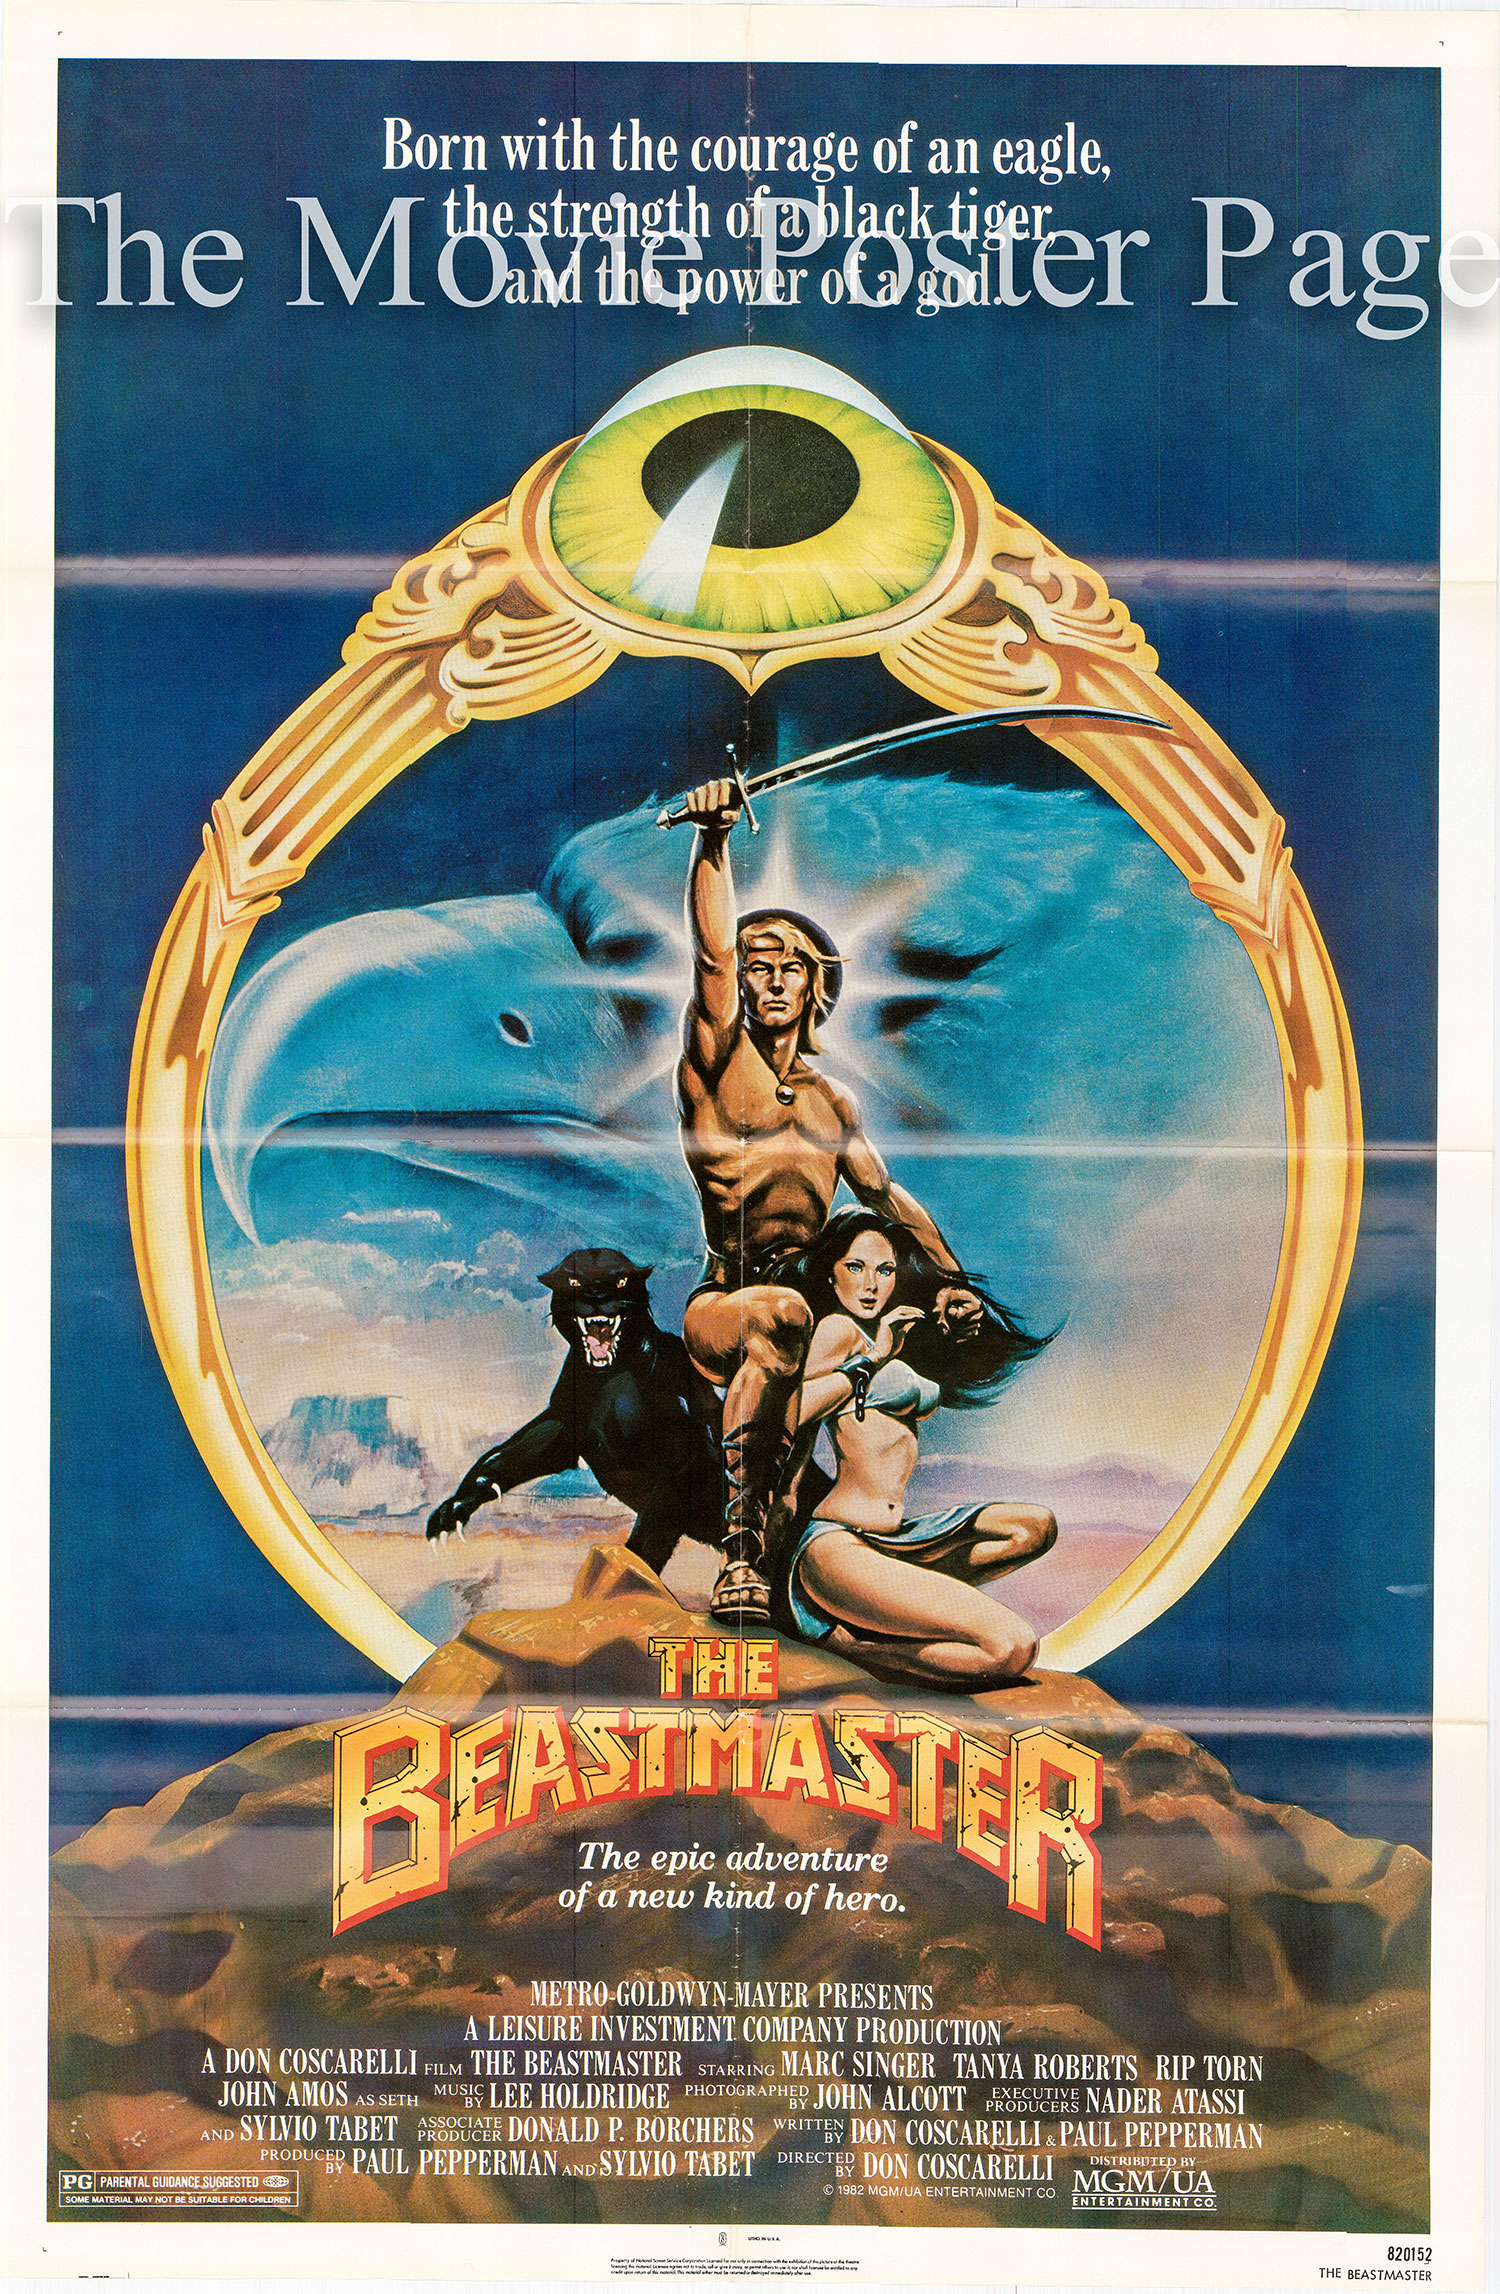 Pictured is the US one-sheet promotional poster for the 1982 Don Coscarelli film Beastmaster starring Marc Singer and Tanya Roberts.